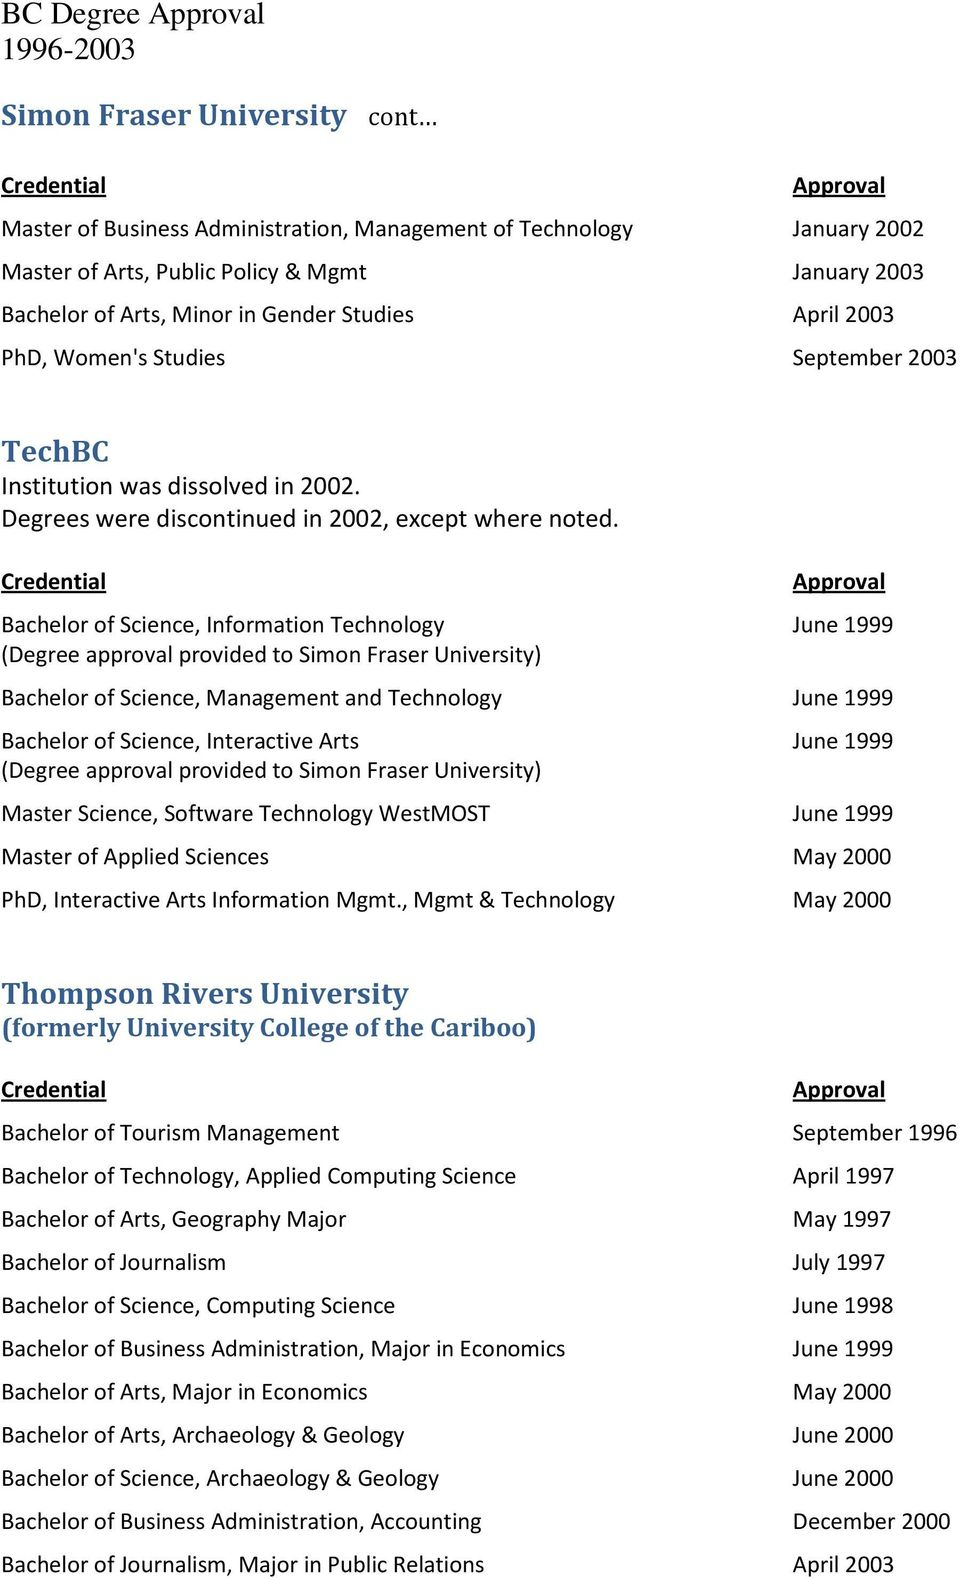 Bachelor of Science, Information Technology (Degree approval provided to Simon Fraser University) June 1999 Bachelor of Science, Management and Technology June 1999 Bachelor of Science, Interactive